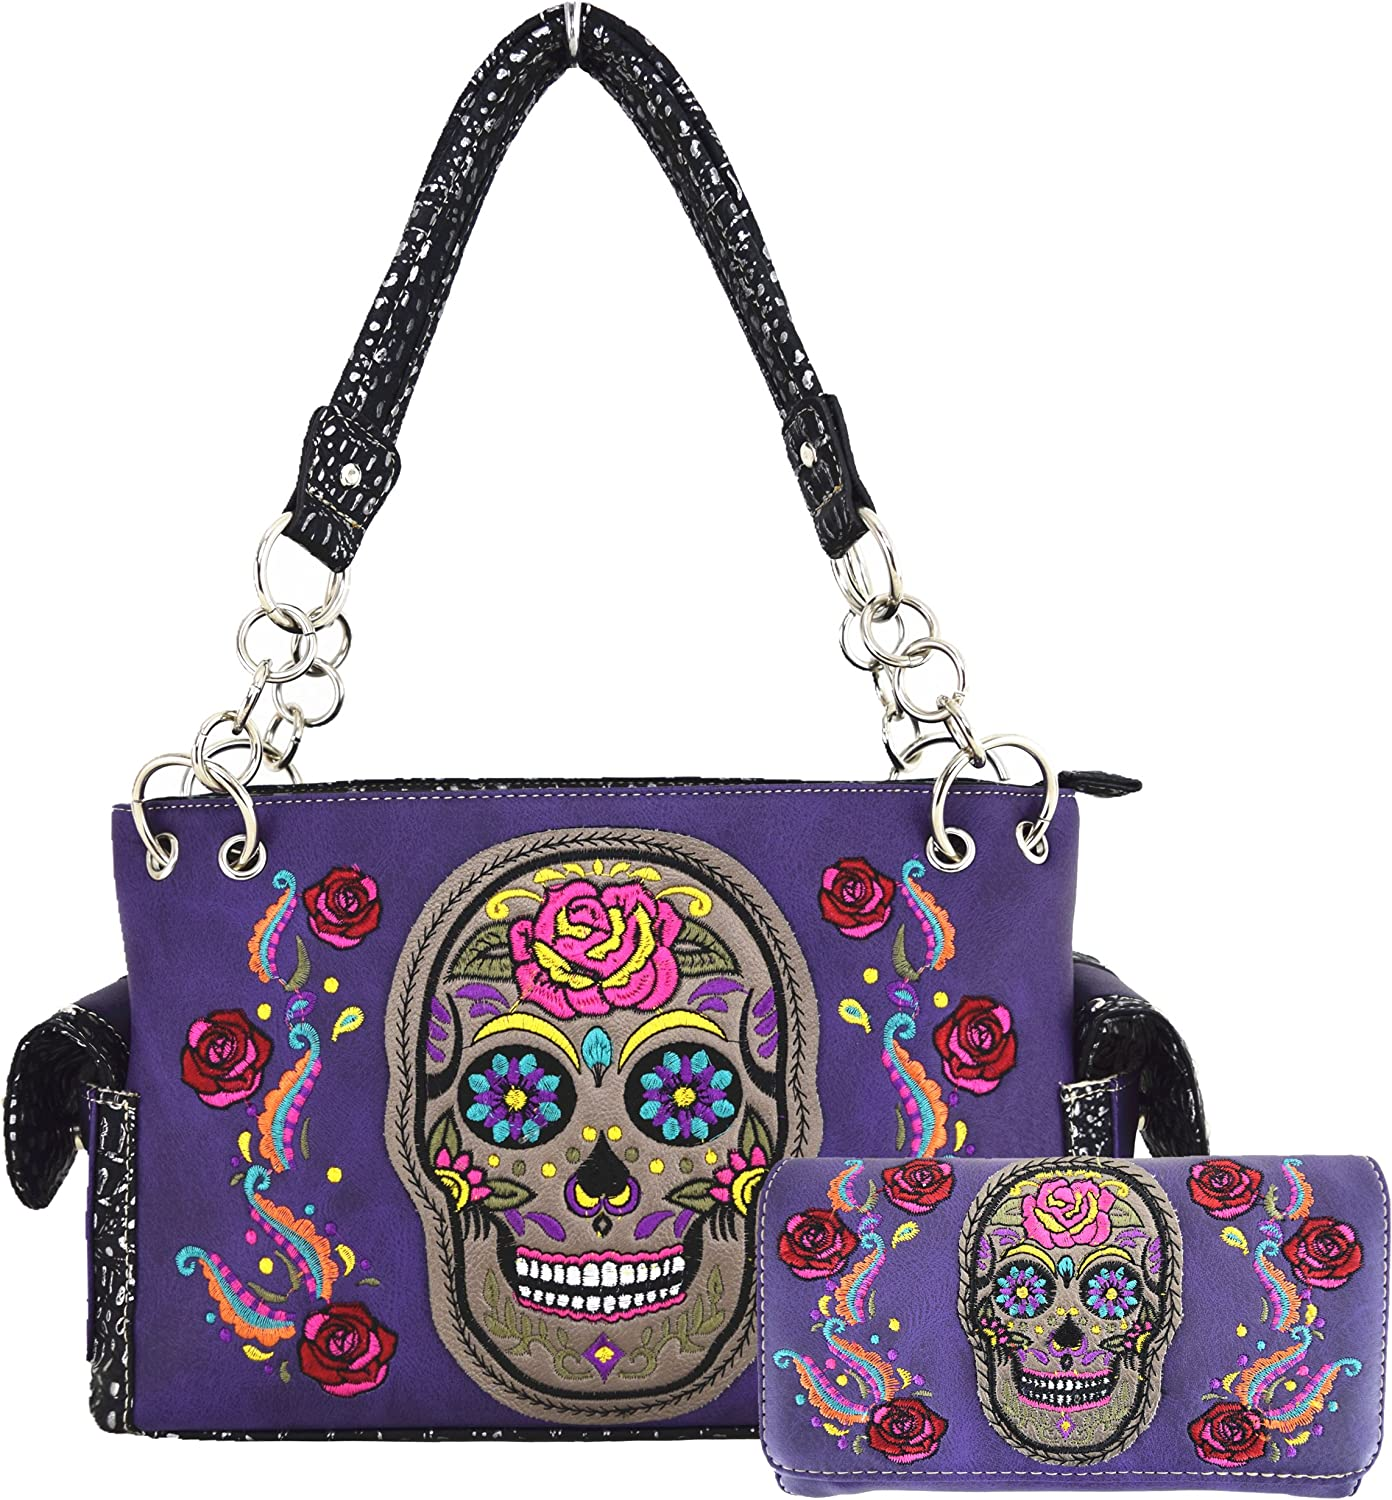 Sugar Skull Day of the Dead Halloween flowers embroidered Women's Shoulder Bag Handbags With Wallet Set